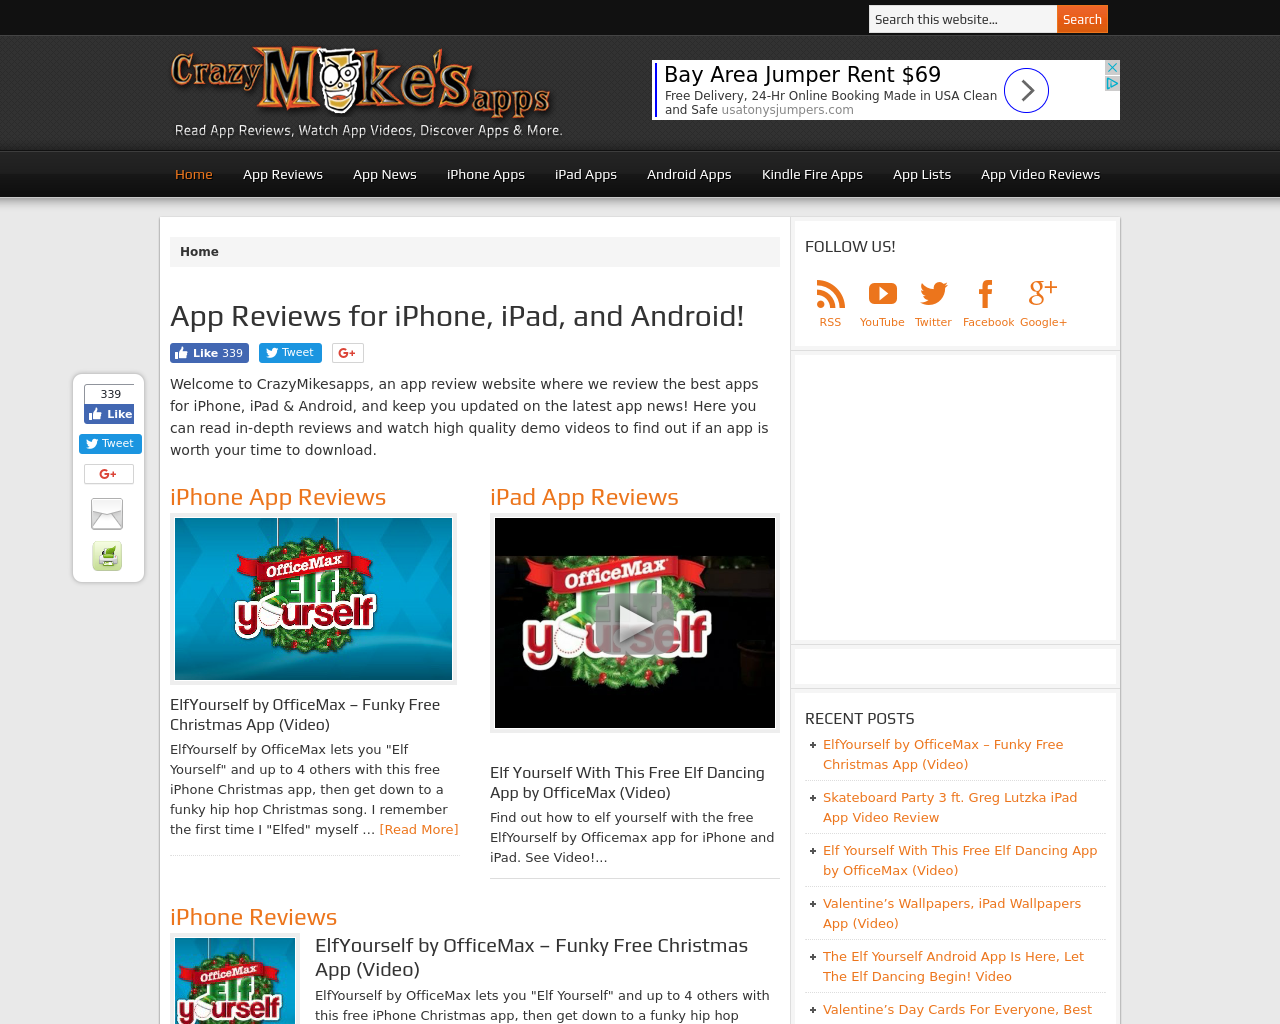 Crazy-Mike's-Apps-Advertising-Reviews-Pricing